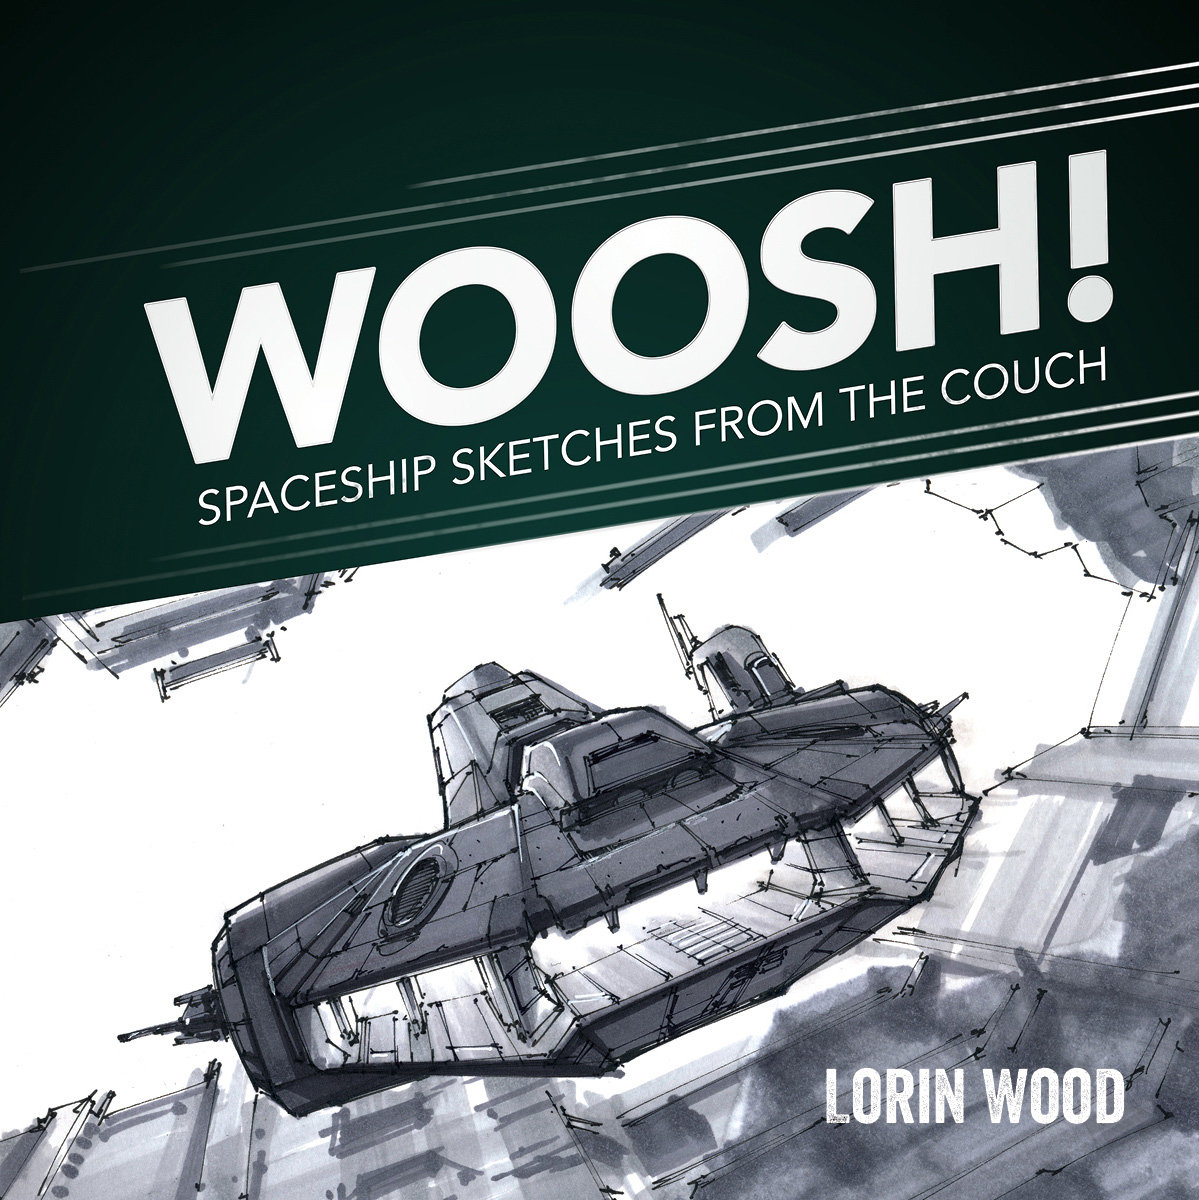 Lorin wood woosh spaceship sketches from the couch 01